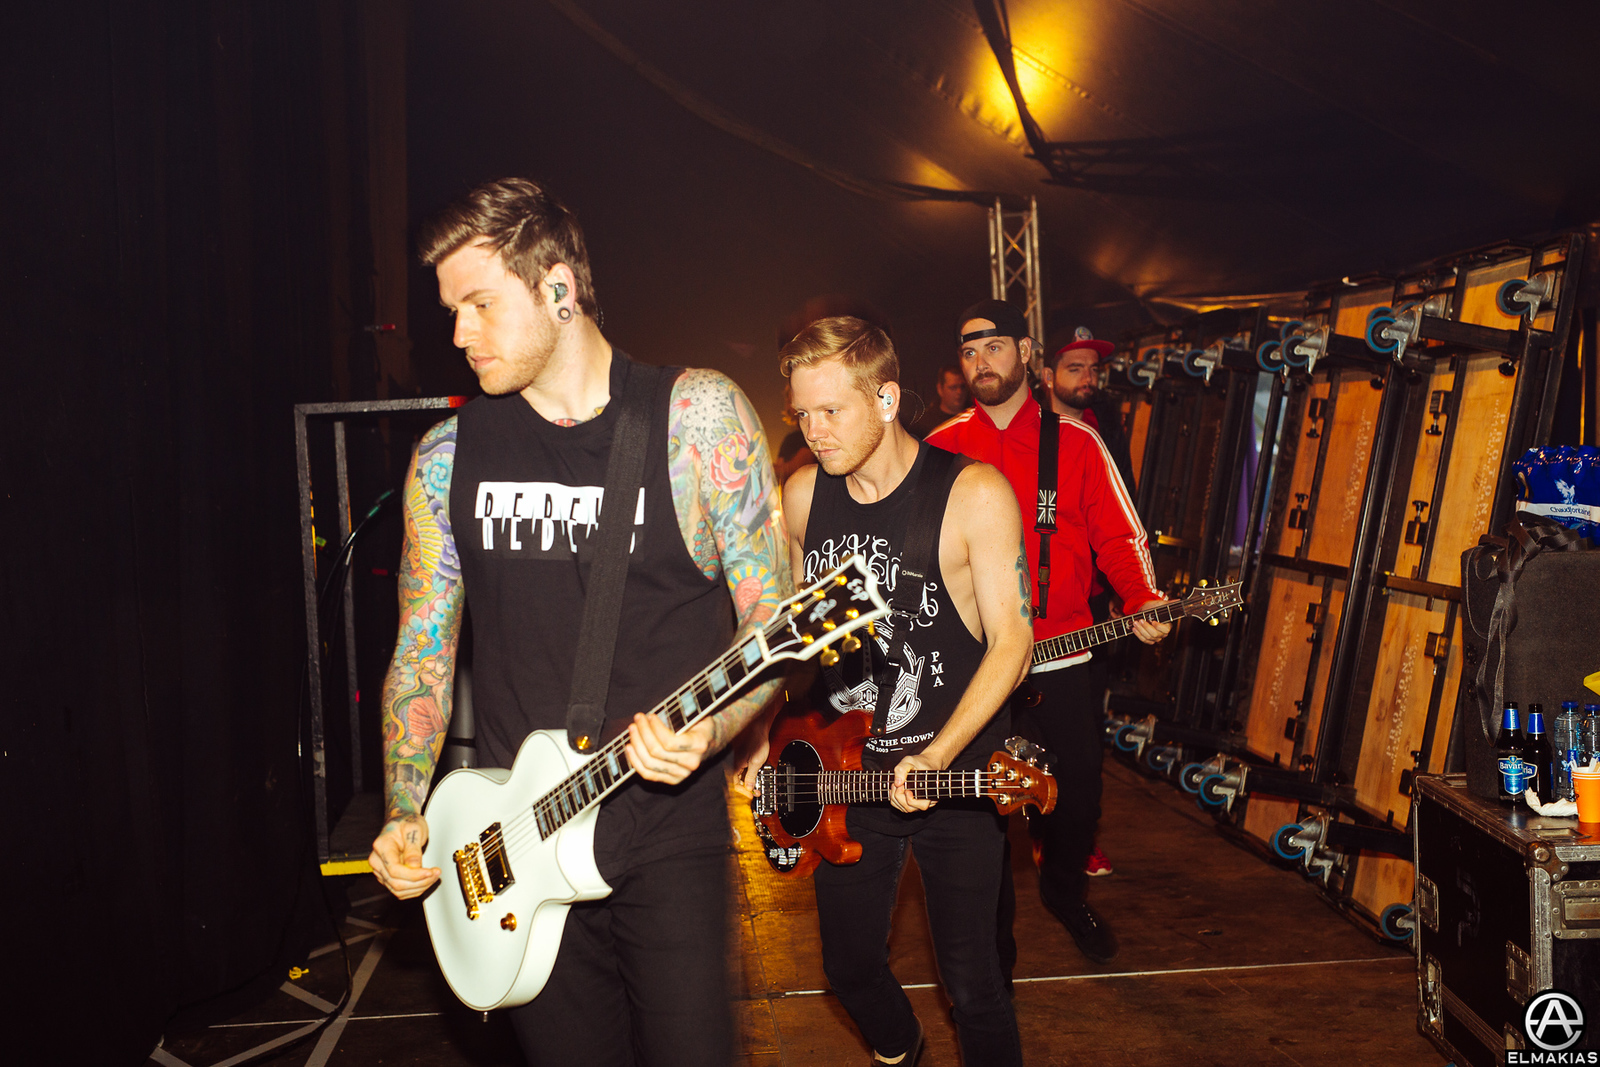 A Day To Remember at Jera On Air in Ysselsteyn, Netherlands - European Festivals